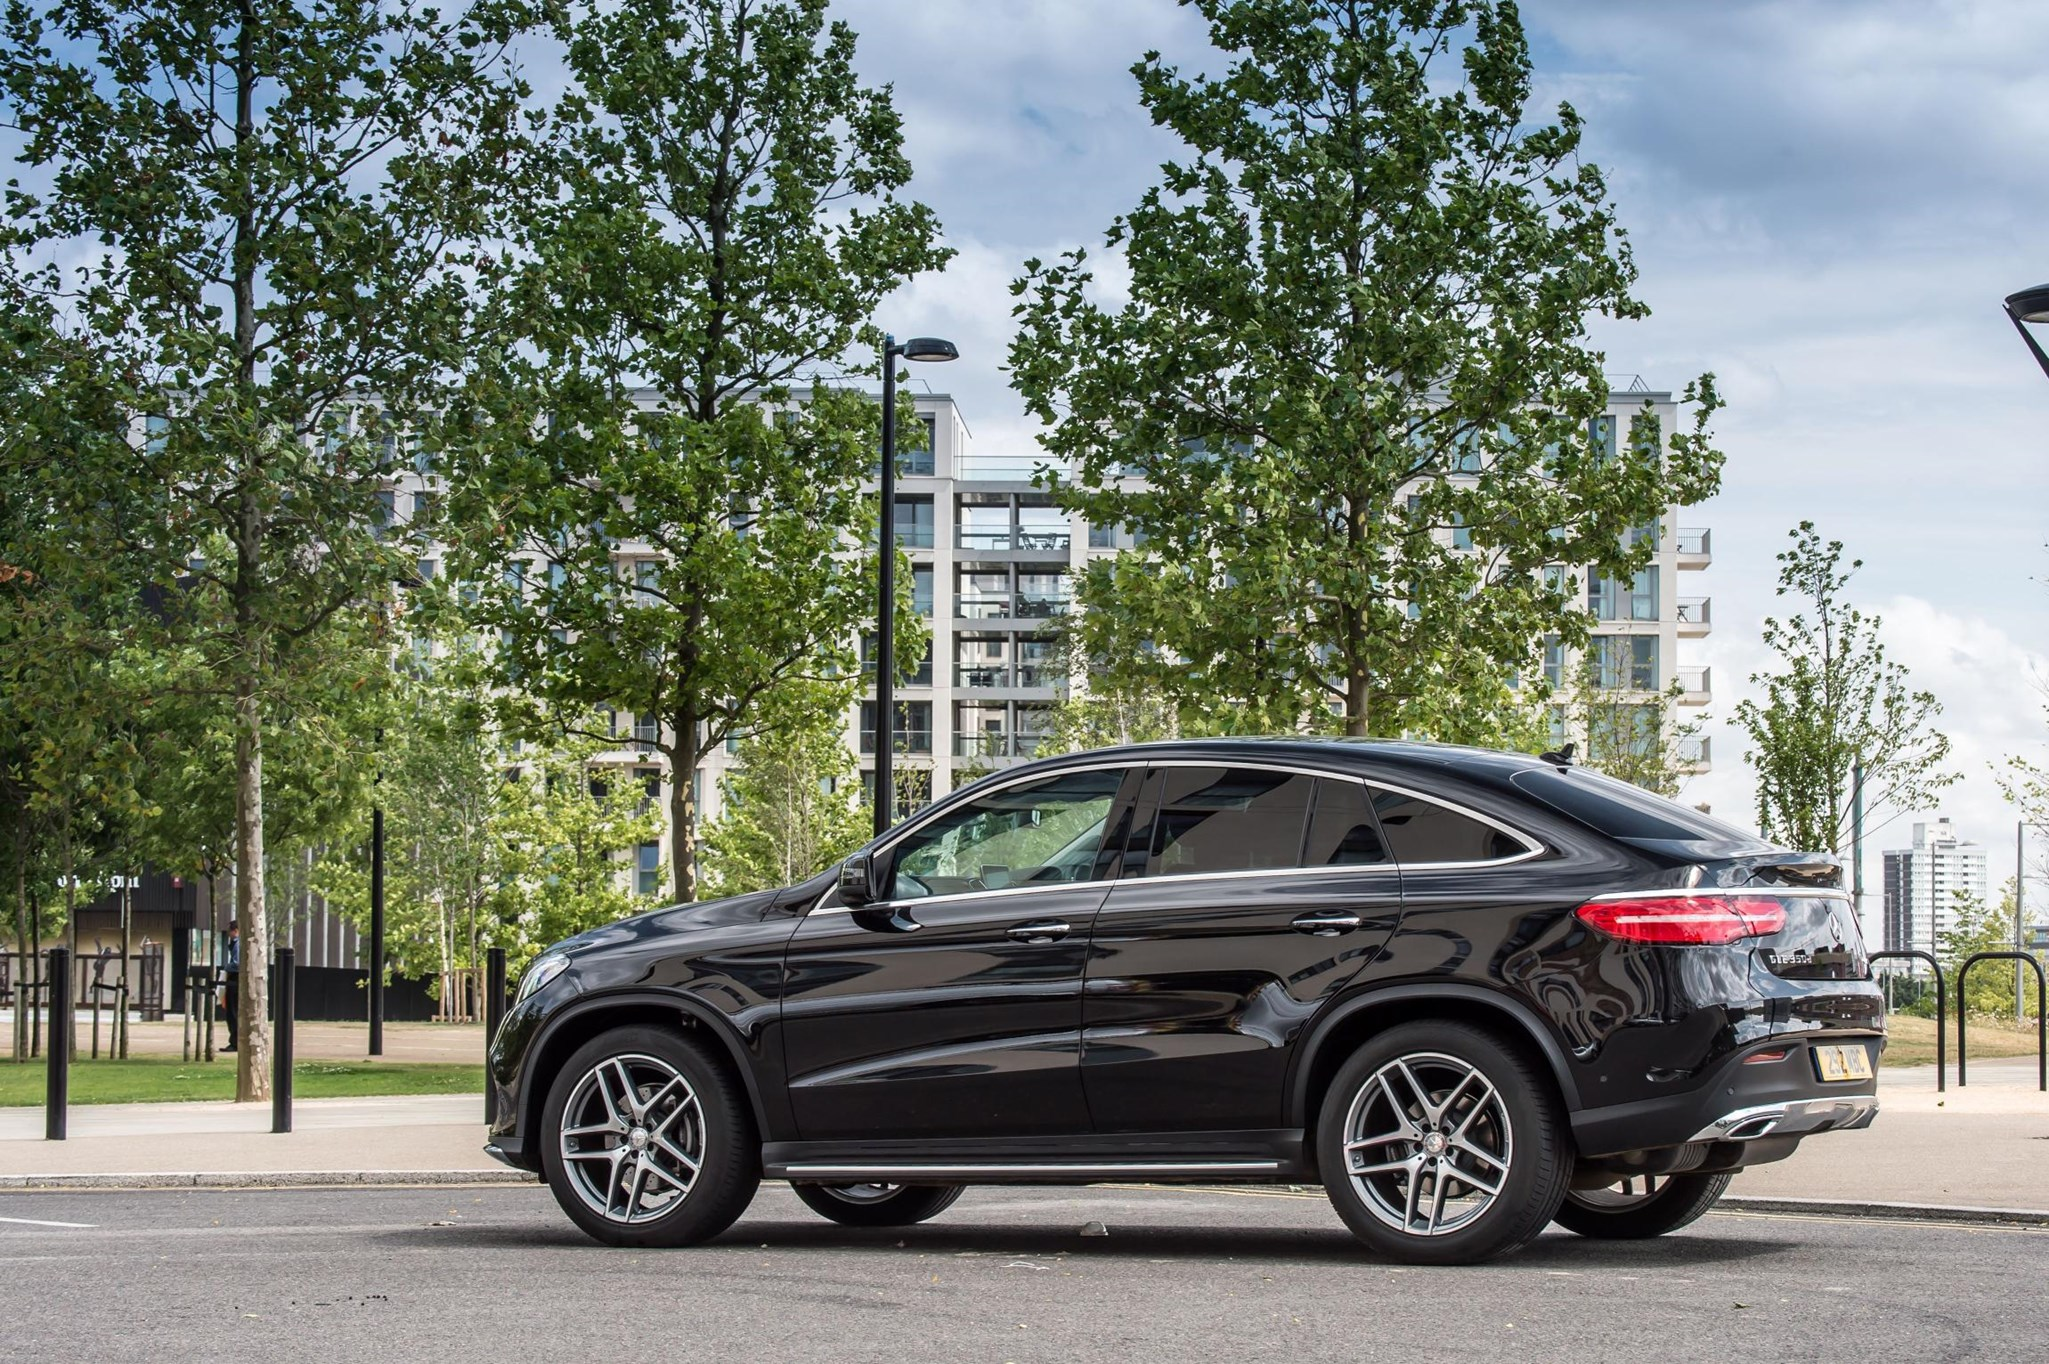 Mercedes benz glc 350 d coupe amg line 2016 wallpapers and hd images -  Mercedes Gle Coupe Gle Coupe Looks Elegant From Some Angles